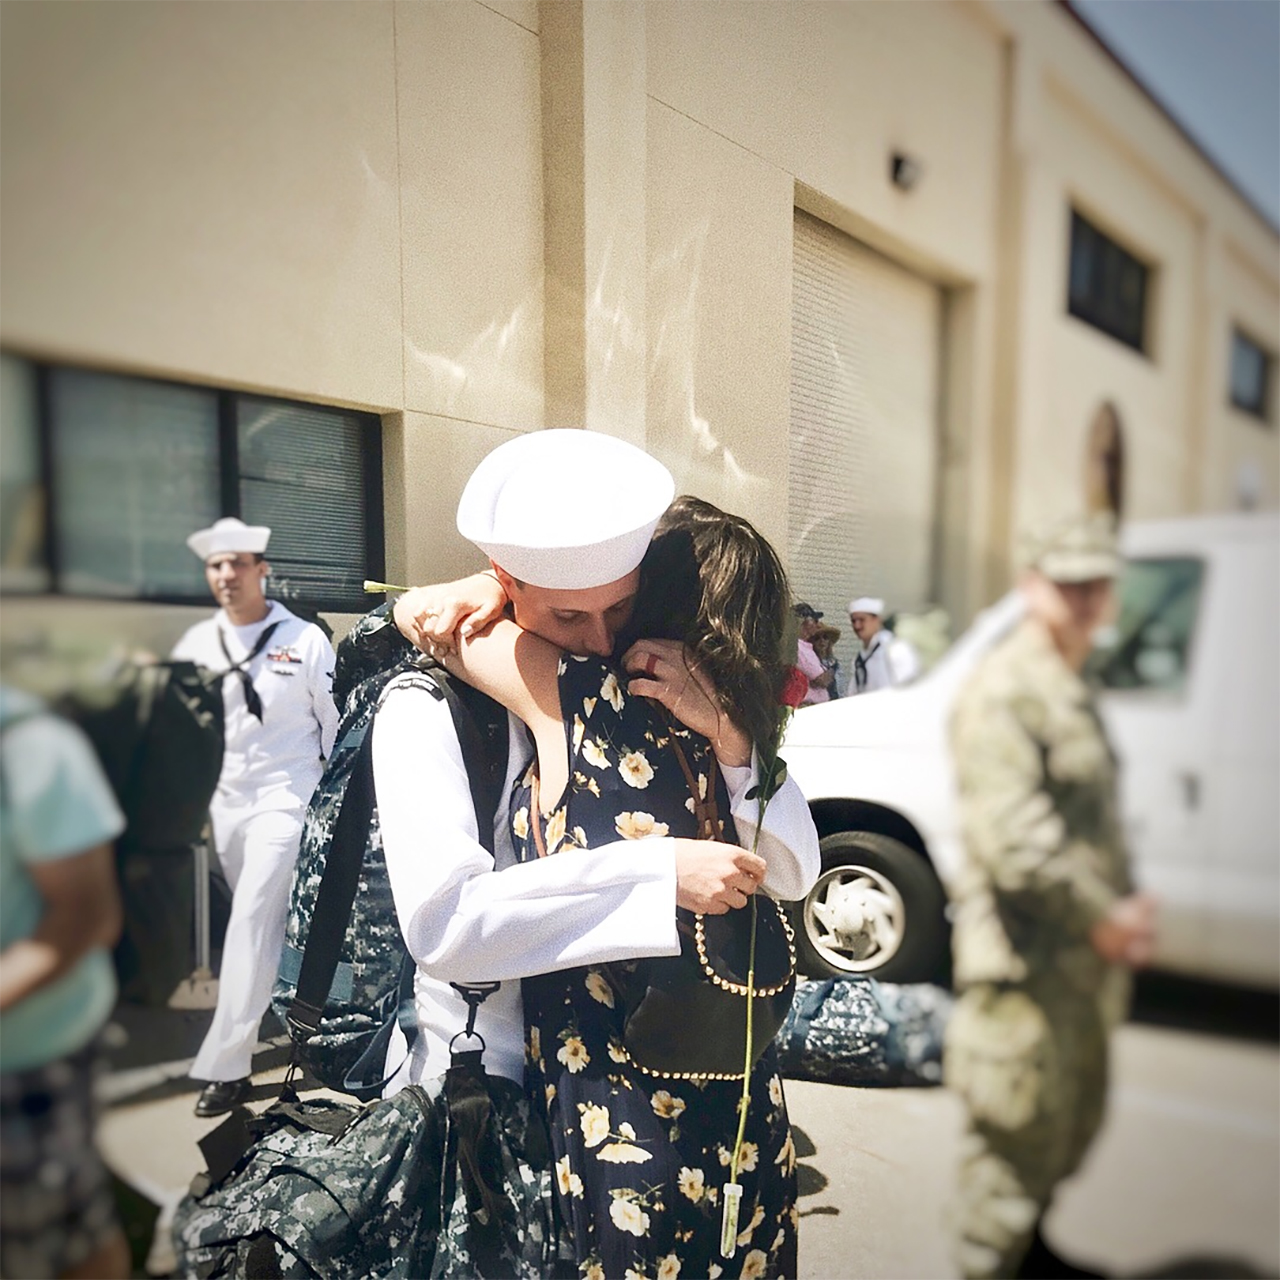 woman in flower dress and navy husband returning from deployment and embracing